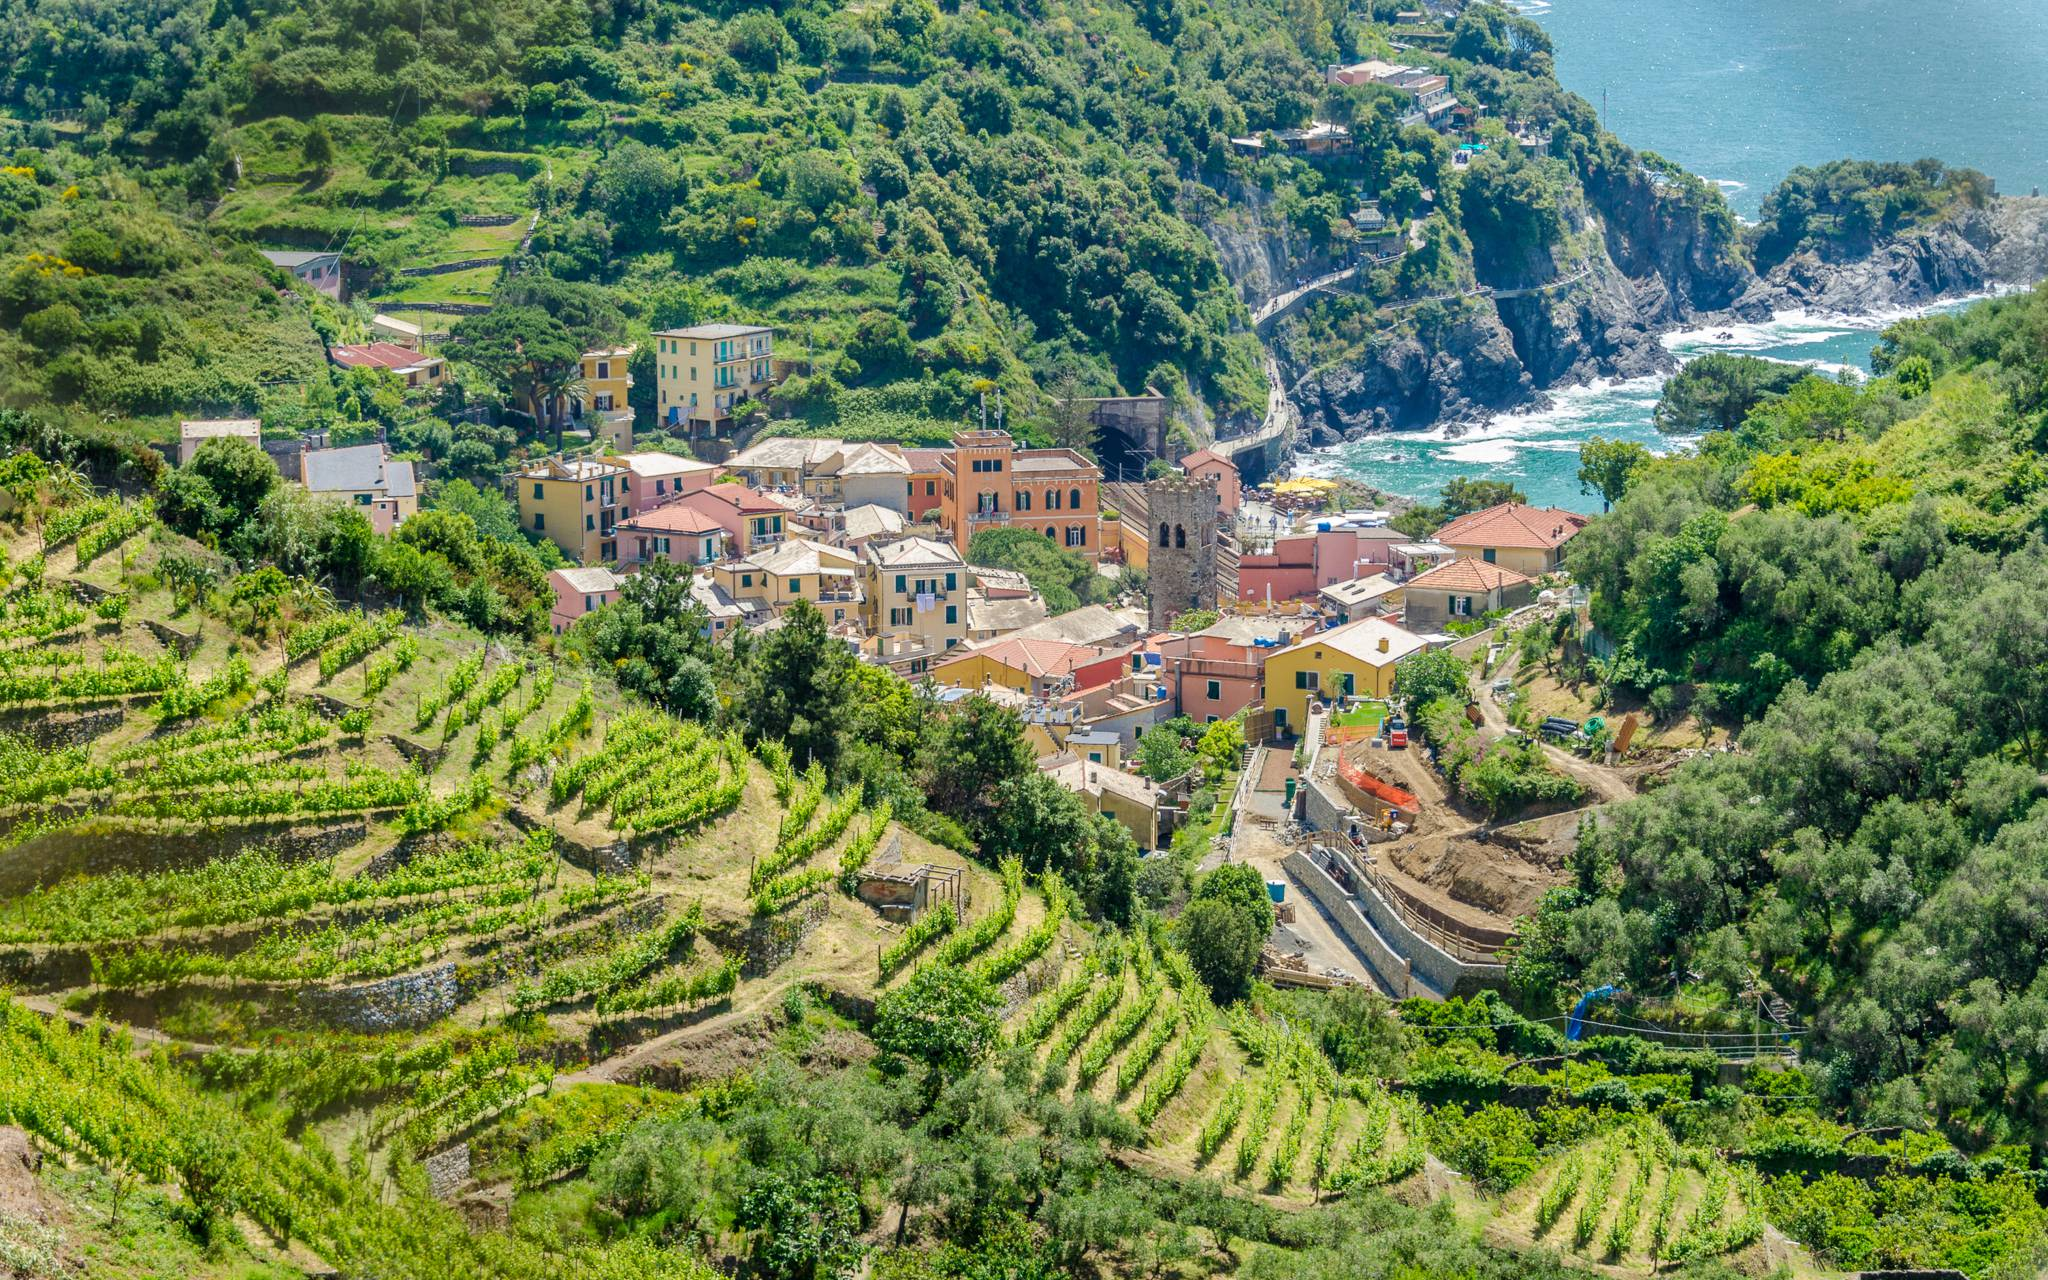 Travel to Cinque Terre with eTips Travel Guides